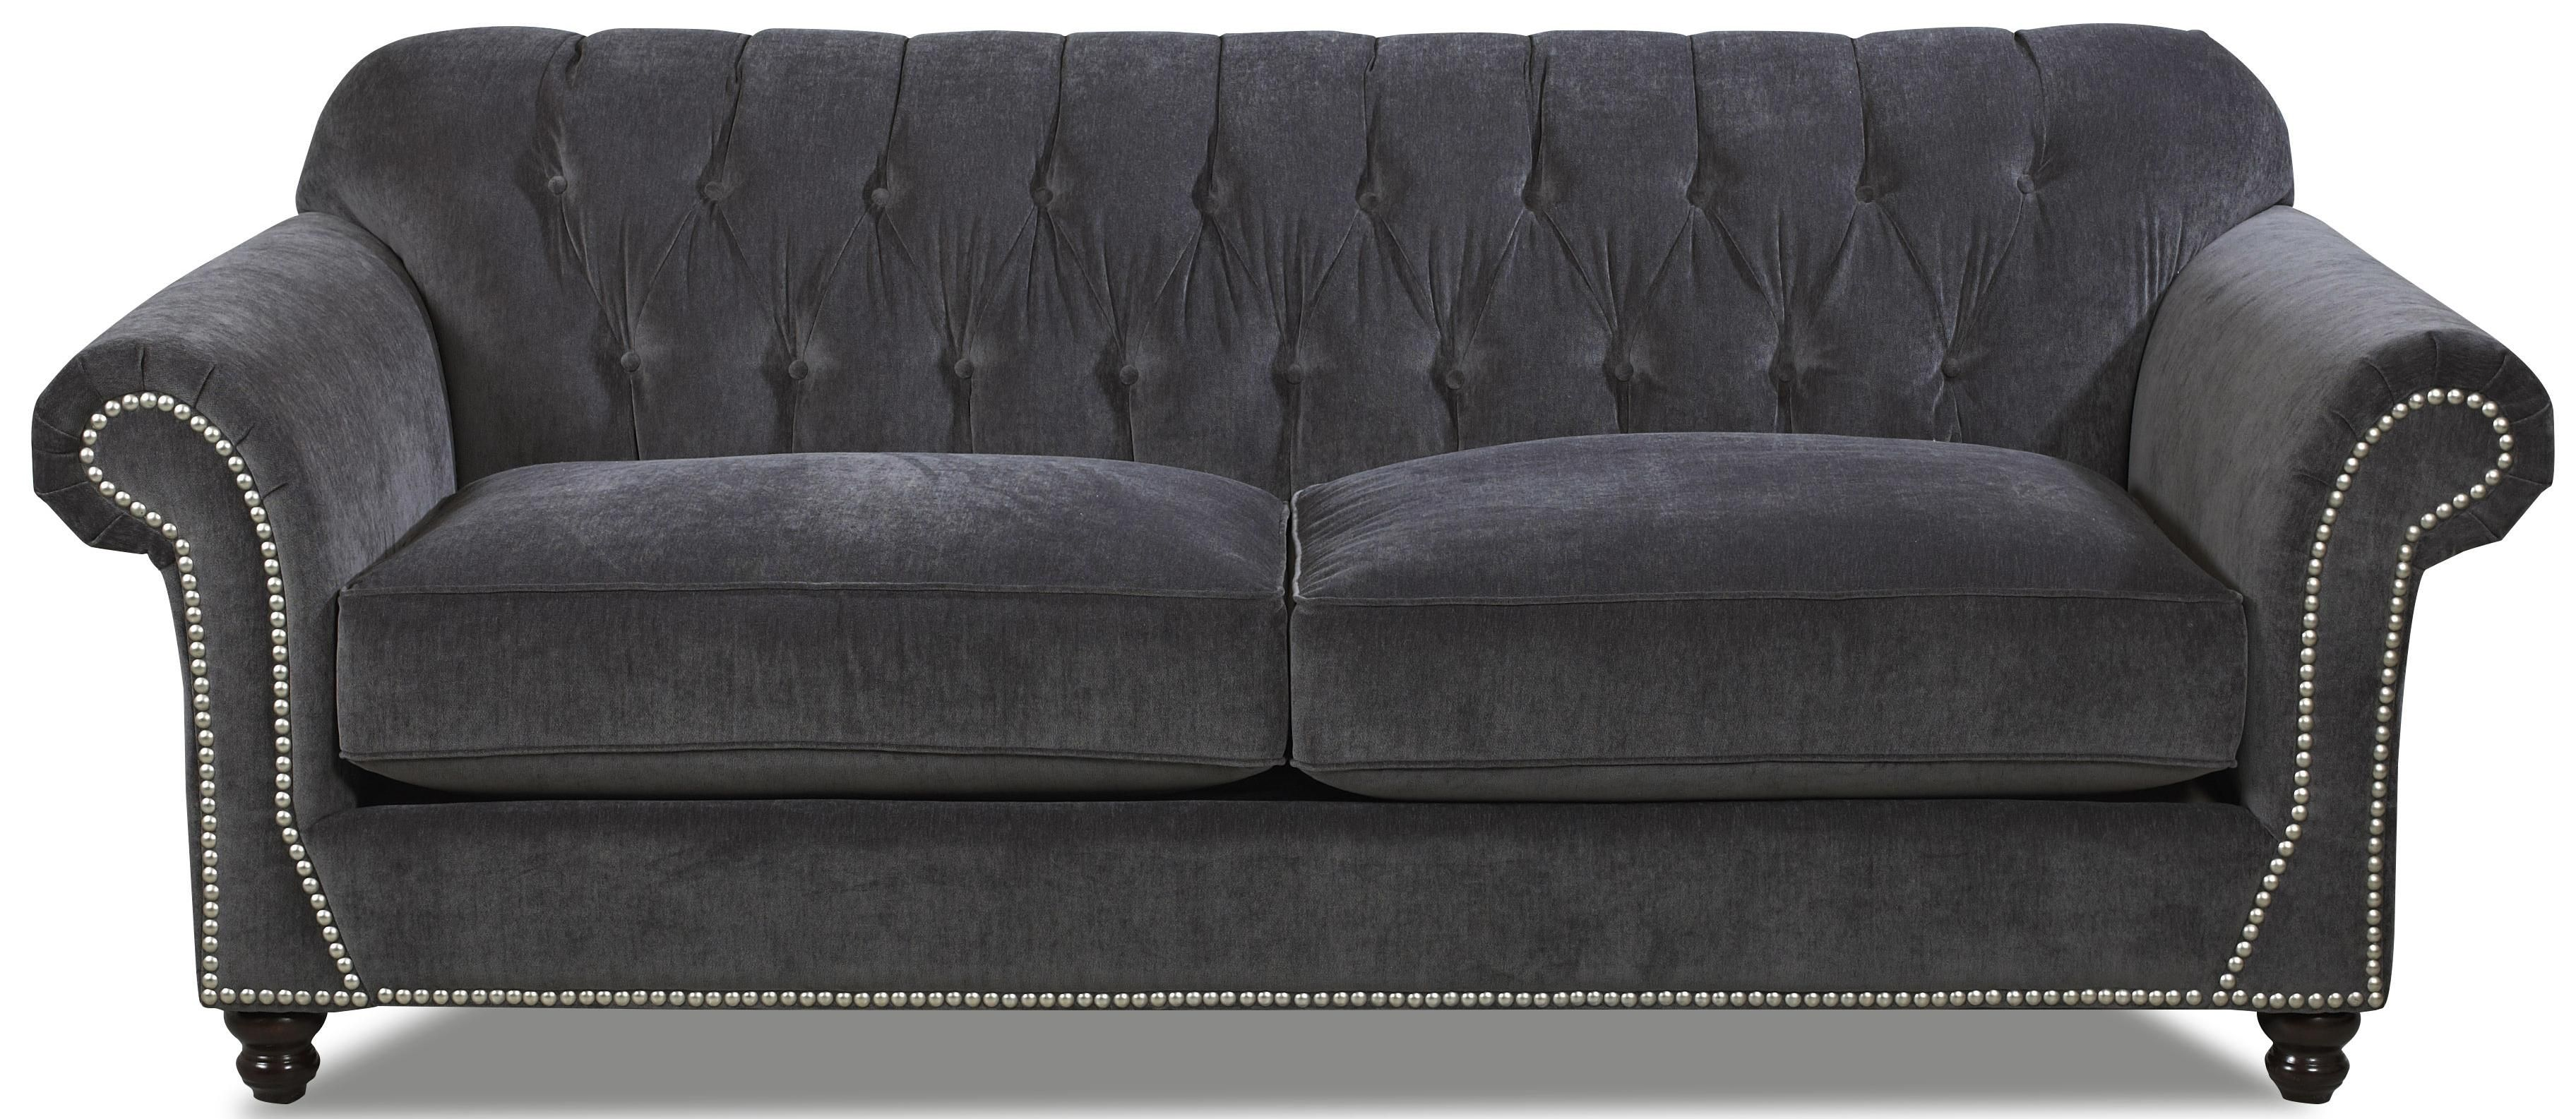 Rolled arm tufted sofa fabric upholstered rolled arm on for Tufted couch set